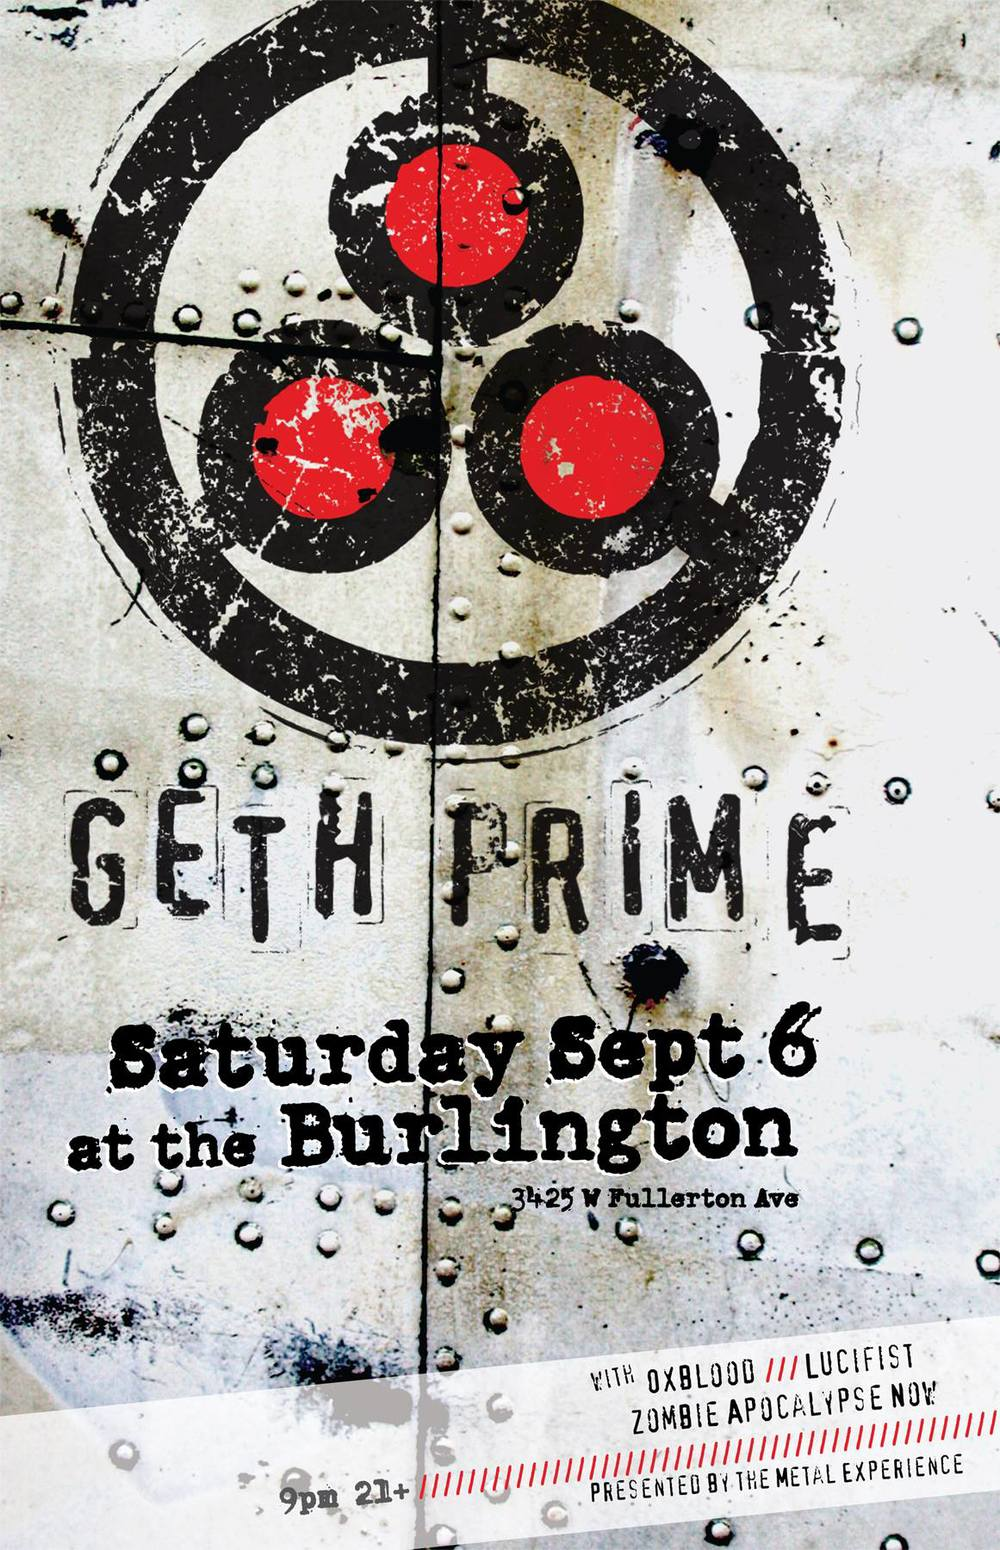 Show poster for Oxblood Band metal infused experimental rock trio show with Geth Prime, Lucifist, and Zombie Apocalypse Now at The Burlington of Sept., 6th 2014